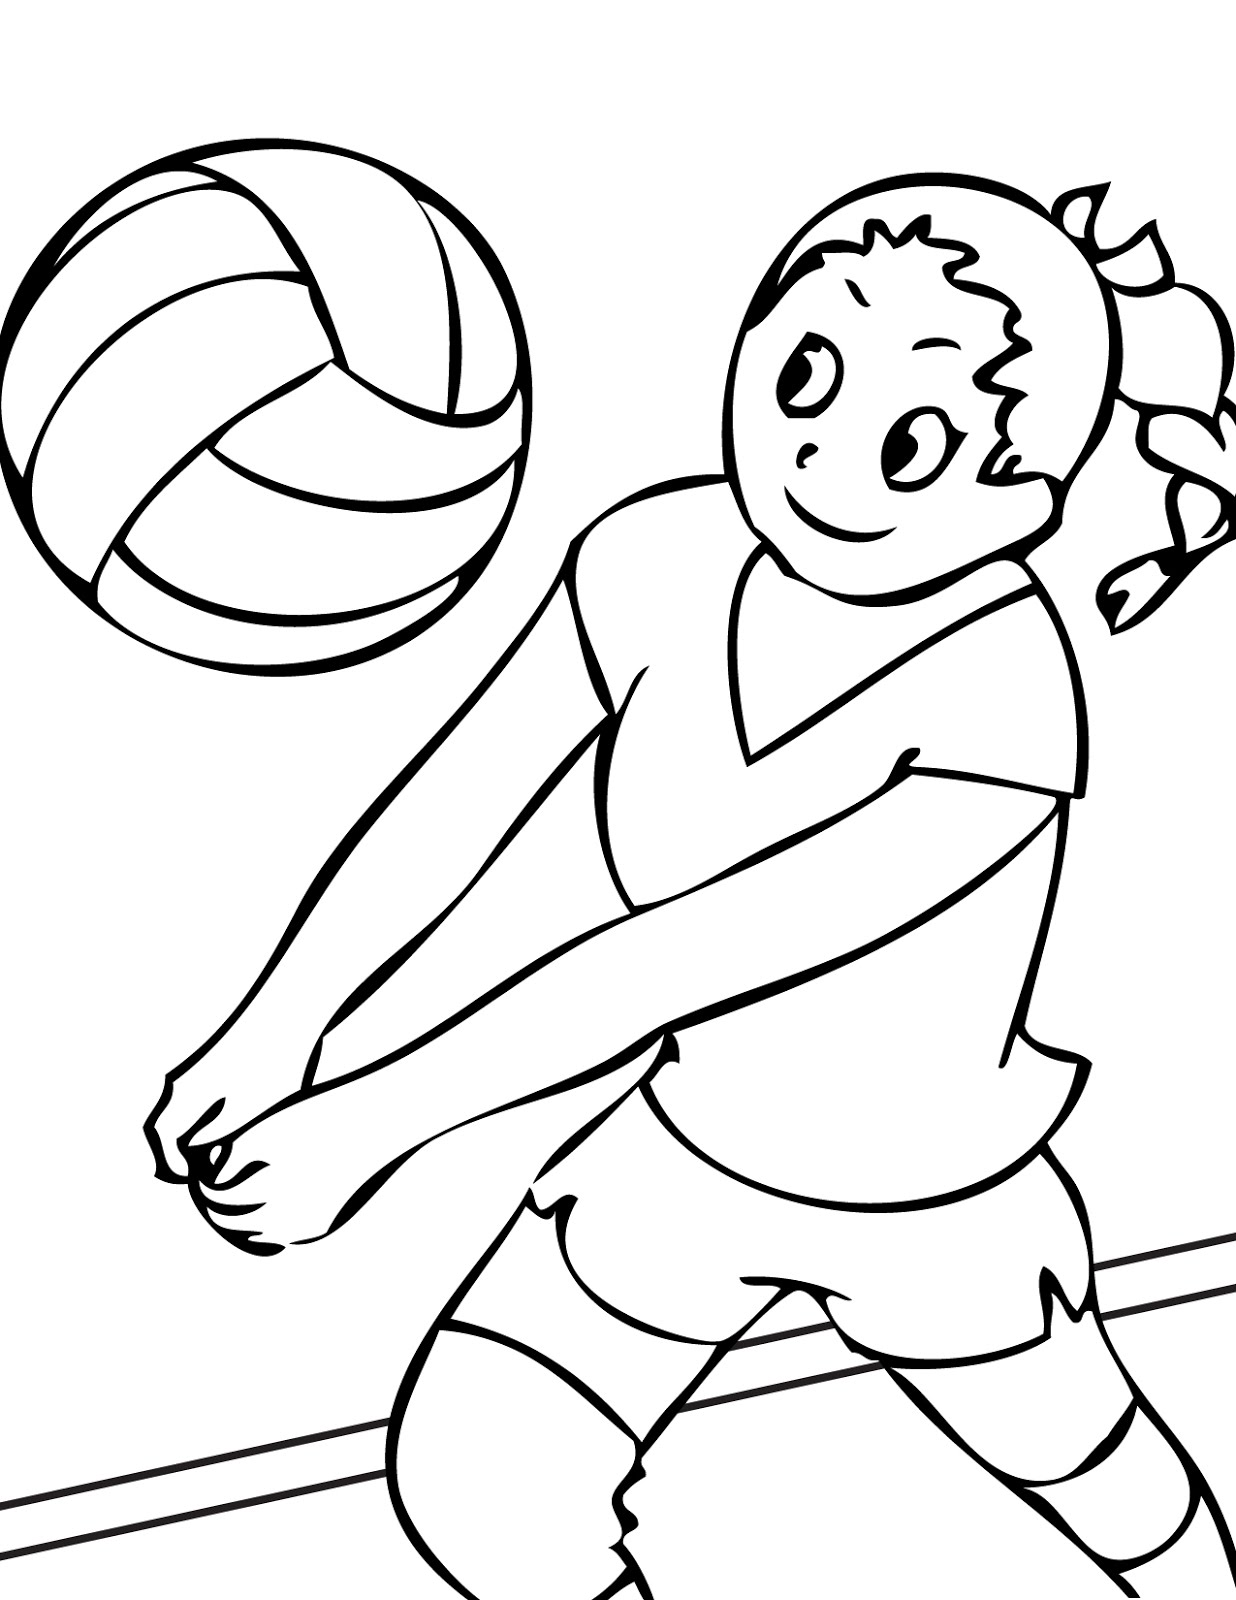 sports coloring pages for kids - photo#3